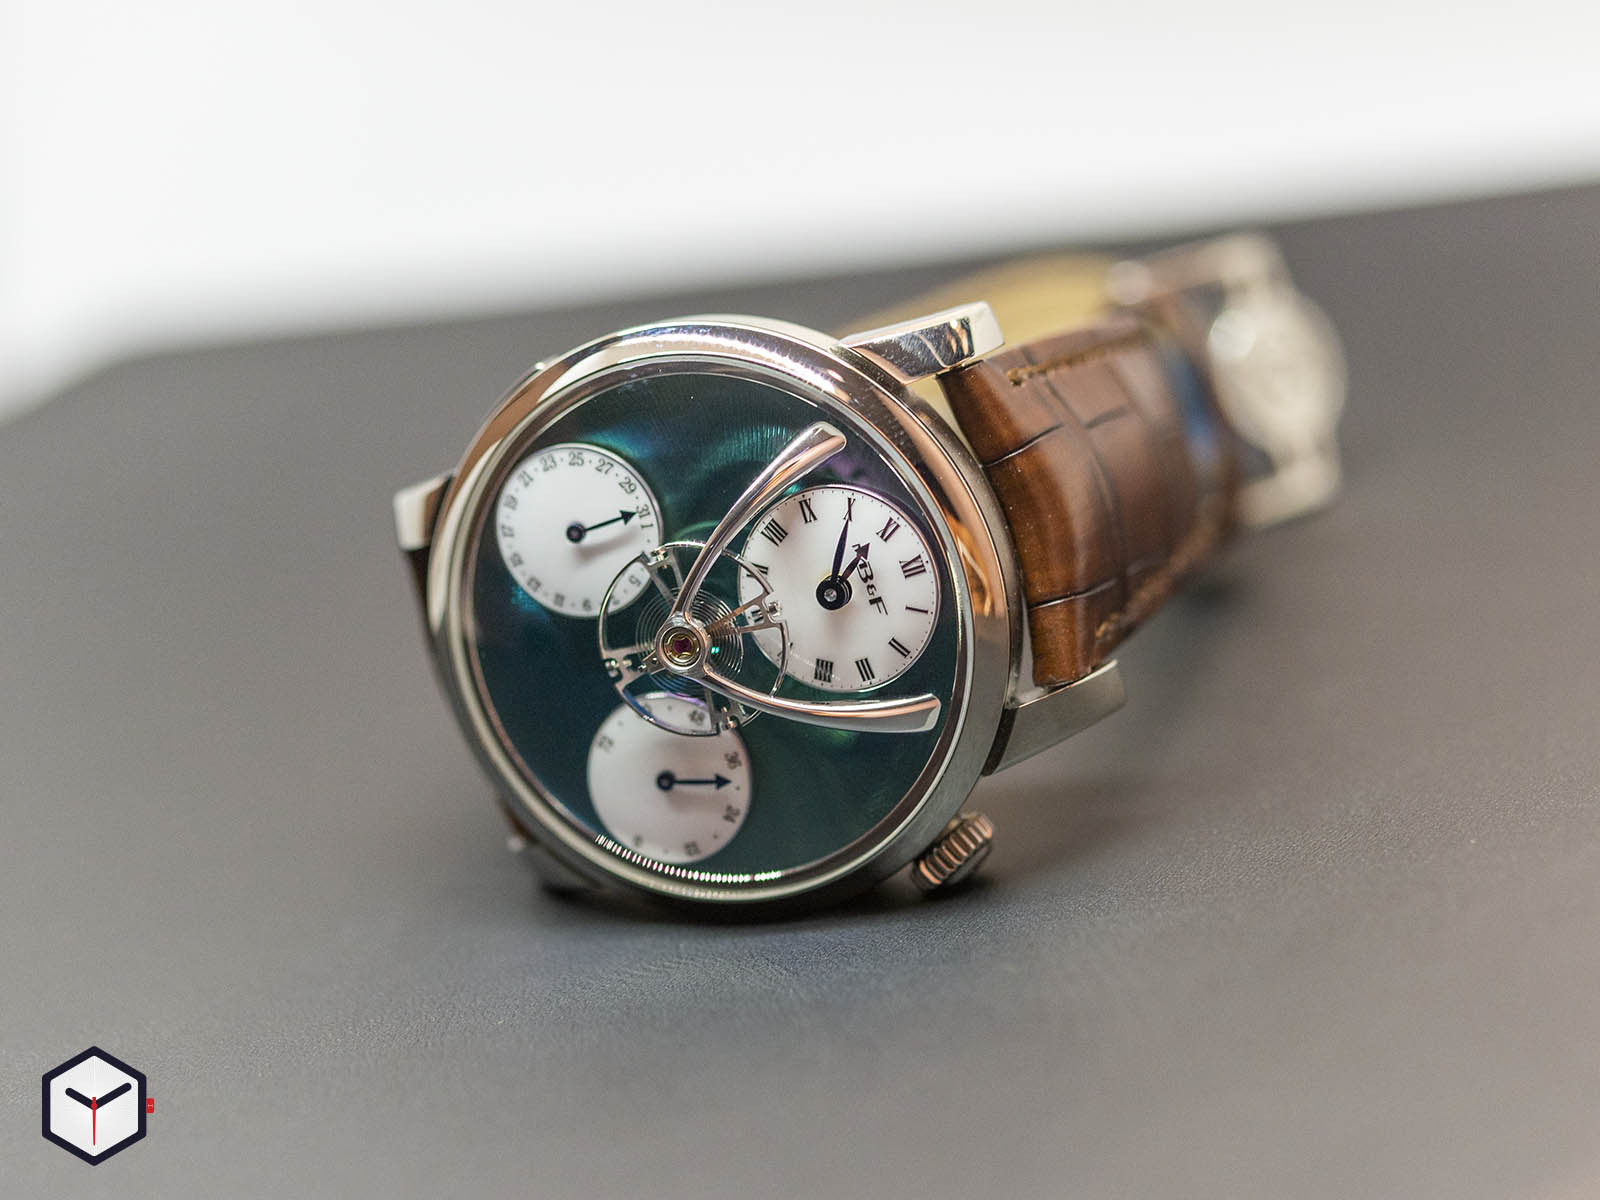 04-tl-g-mb-f-legacy-machine-split-escapement-titanium-green-dial-1.jpg